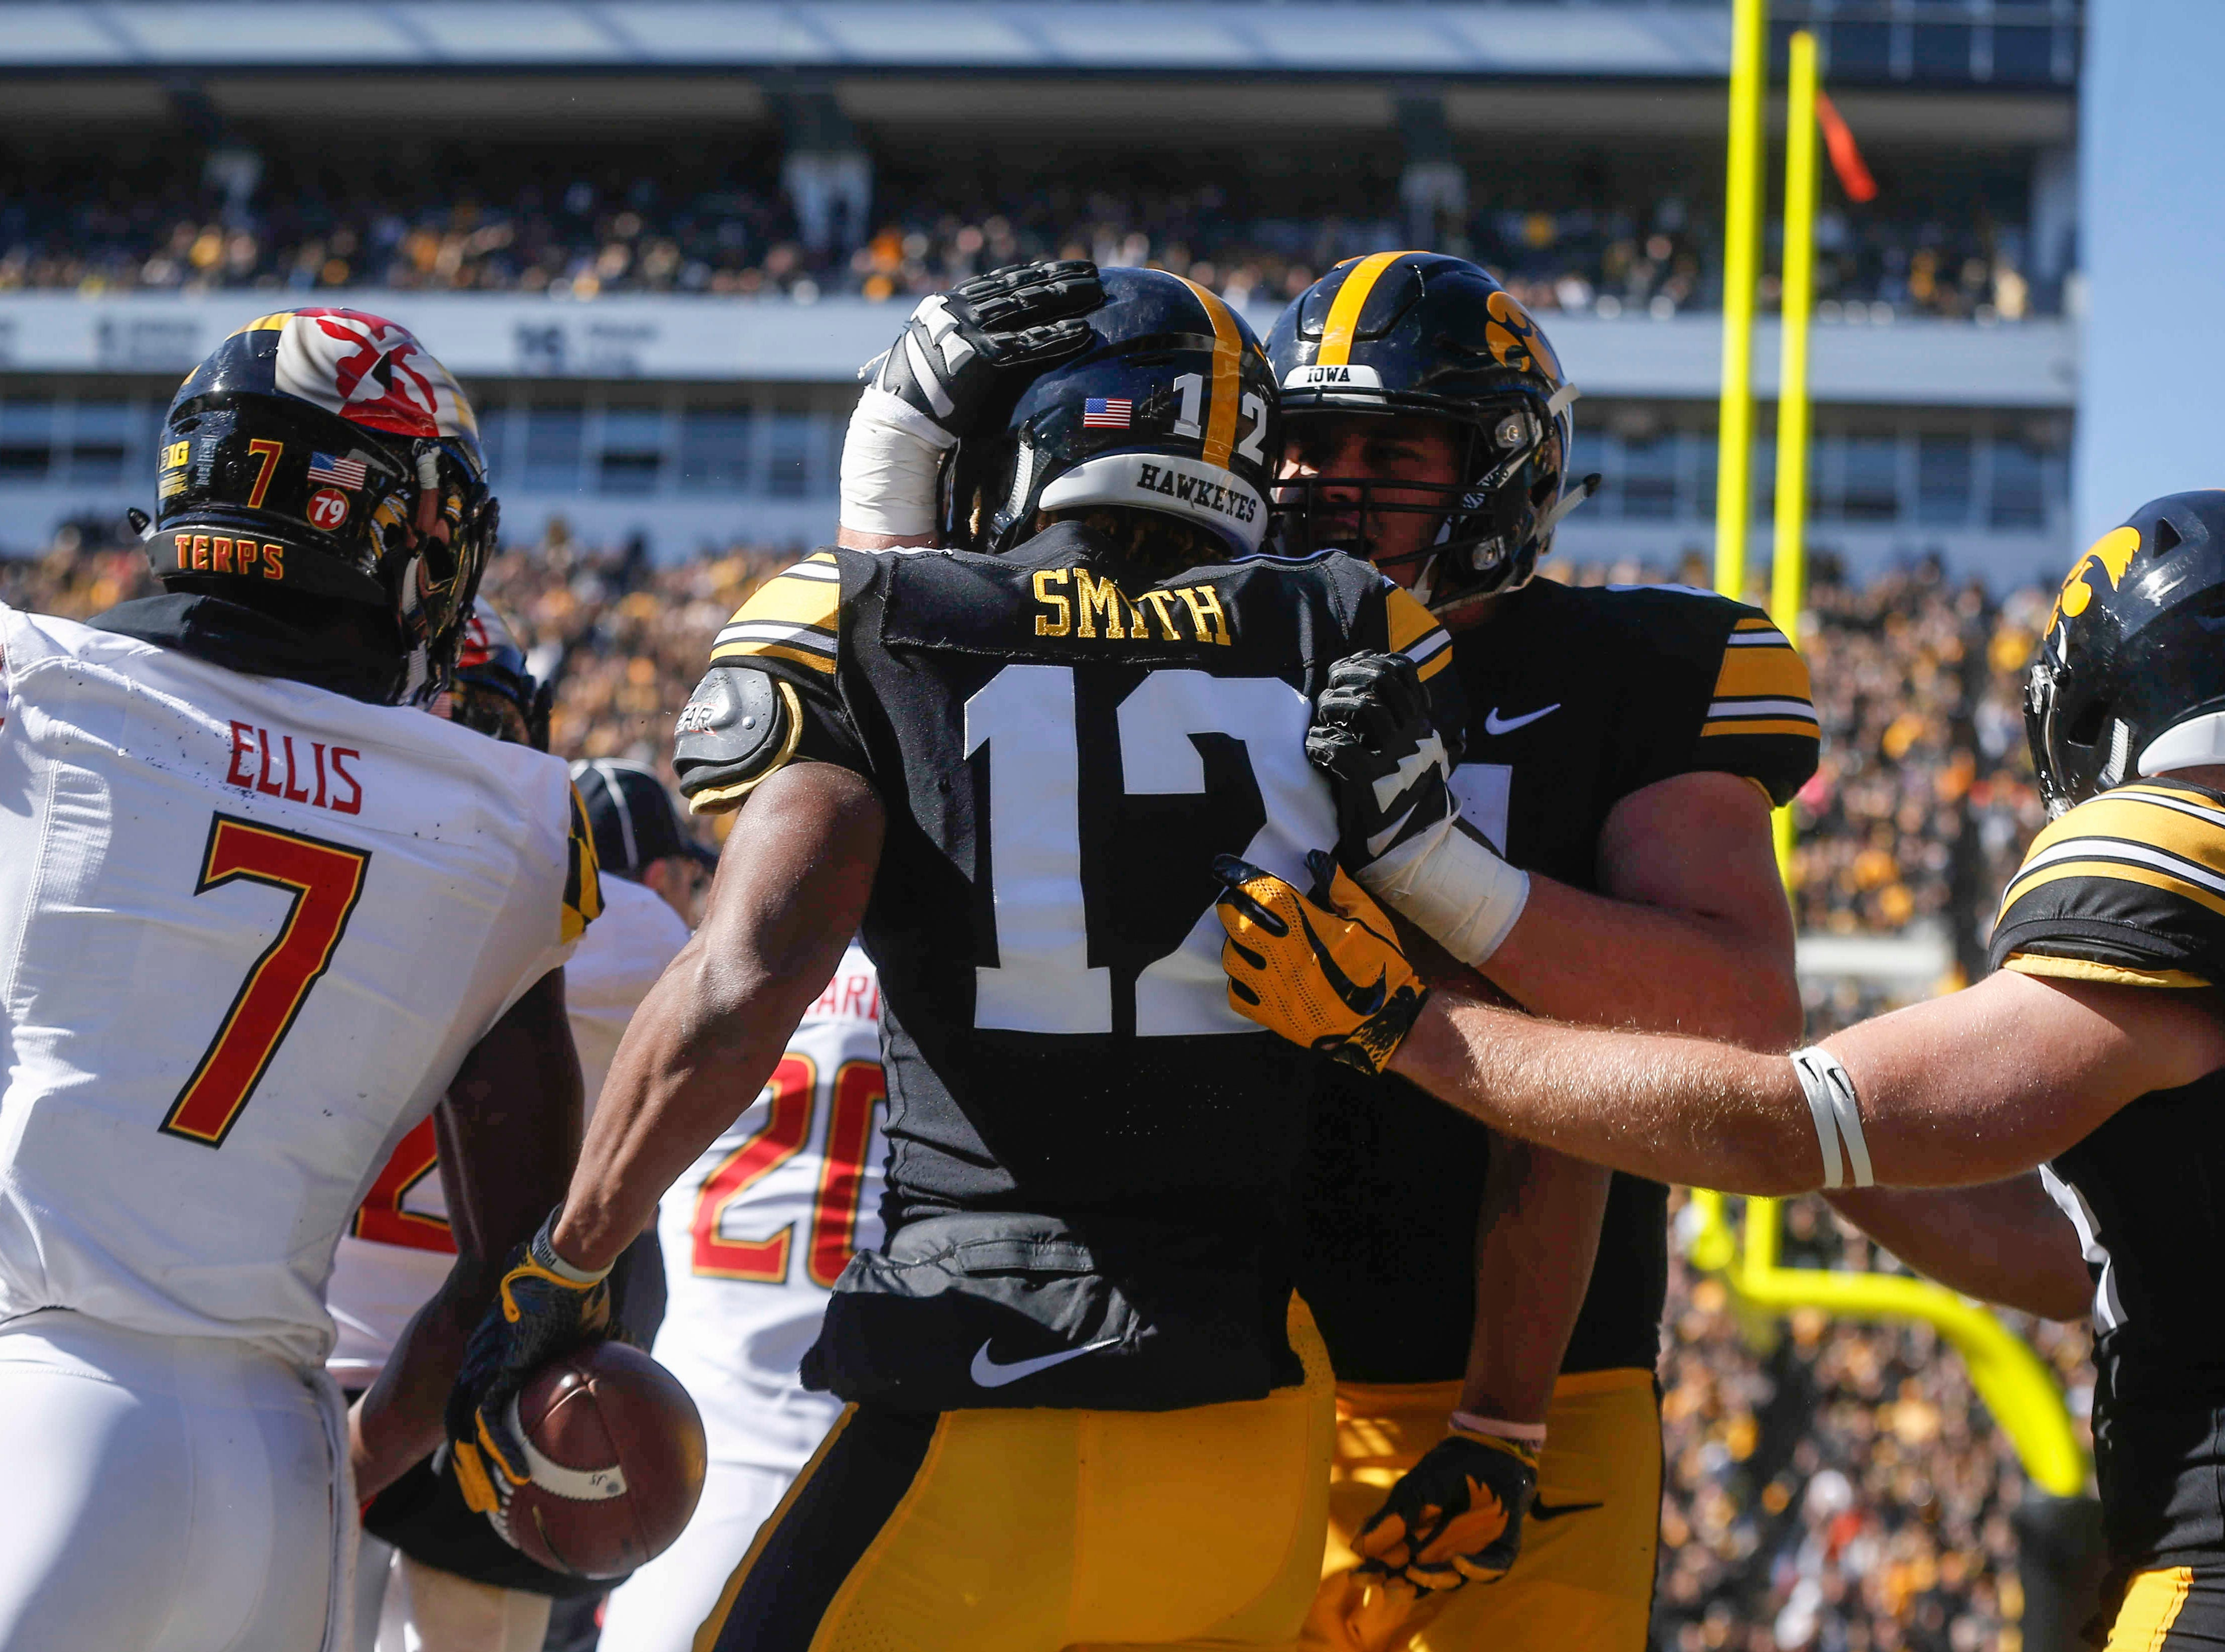 Members of the Iowa offense celebrate after Brandon Smith pulled in a touchdown pass in the end zone against Maryland on Saturday, Oct. 20, 2018, at Kinnick Stadium in Iowa City.